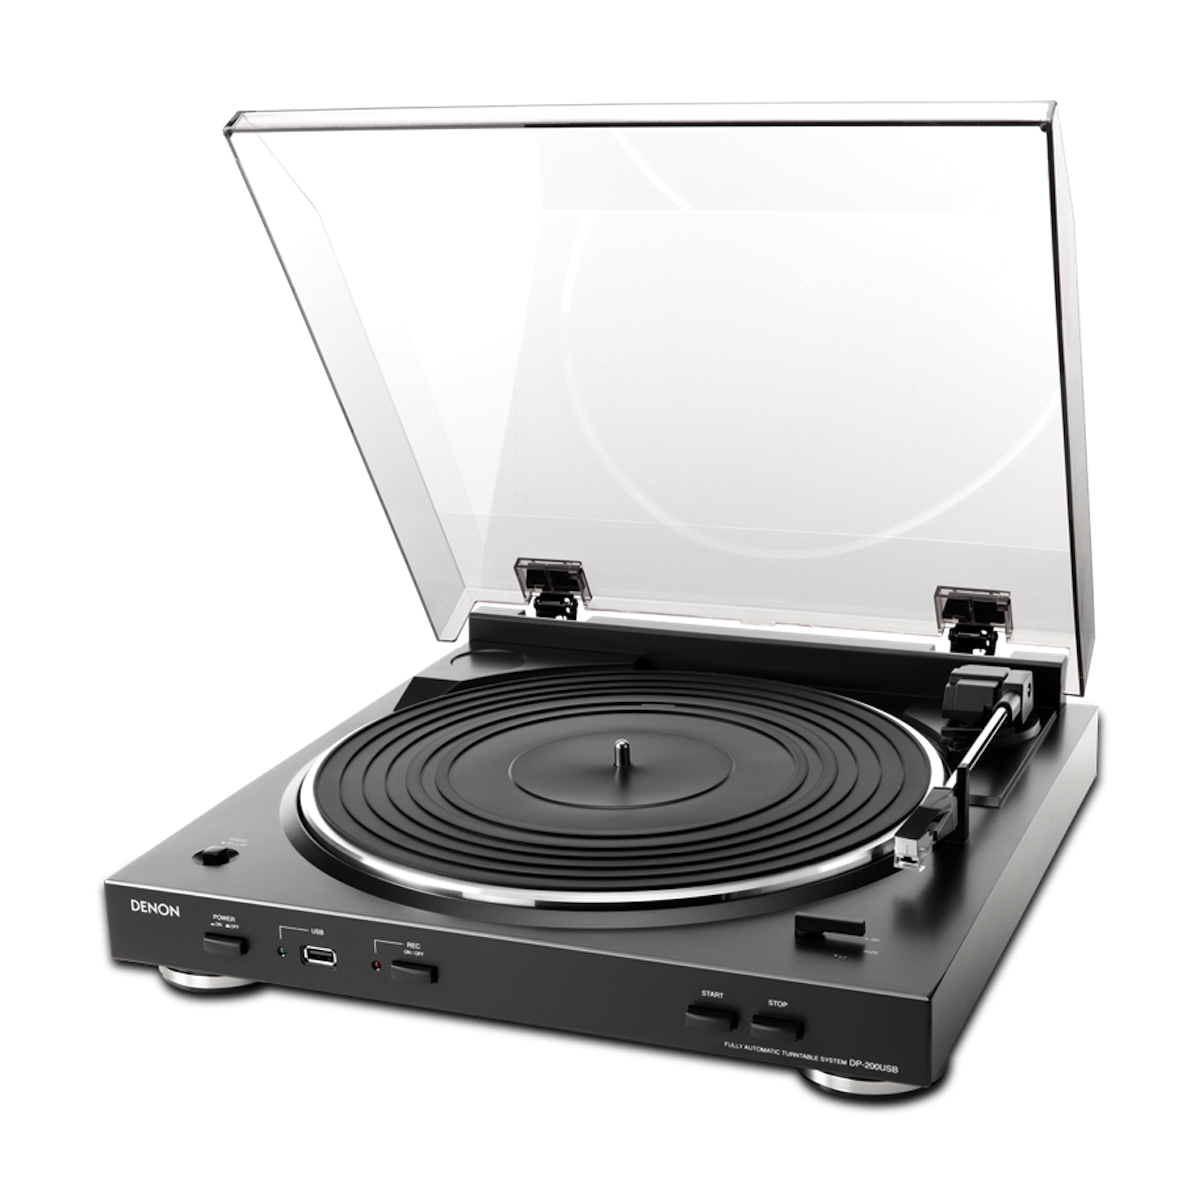 Denon DP-200USB - Turntable, Denon, Turntable - Auratech LLC